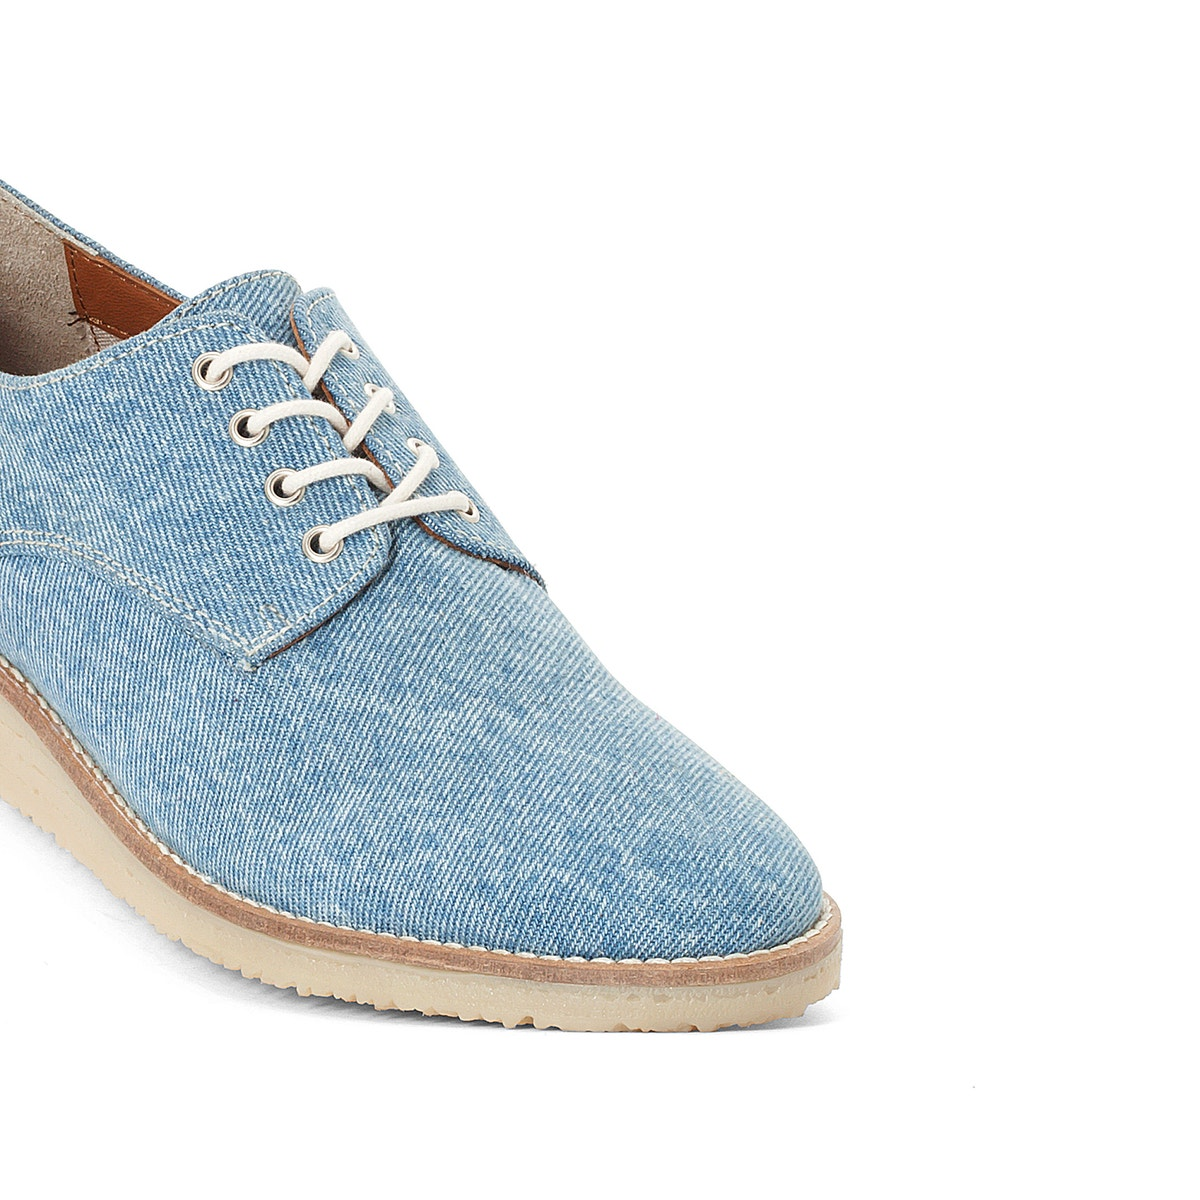 La Redoute Collections Womens Denim Brogues With Honey Honey Honey Sole 4e3634